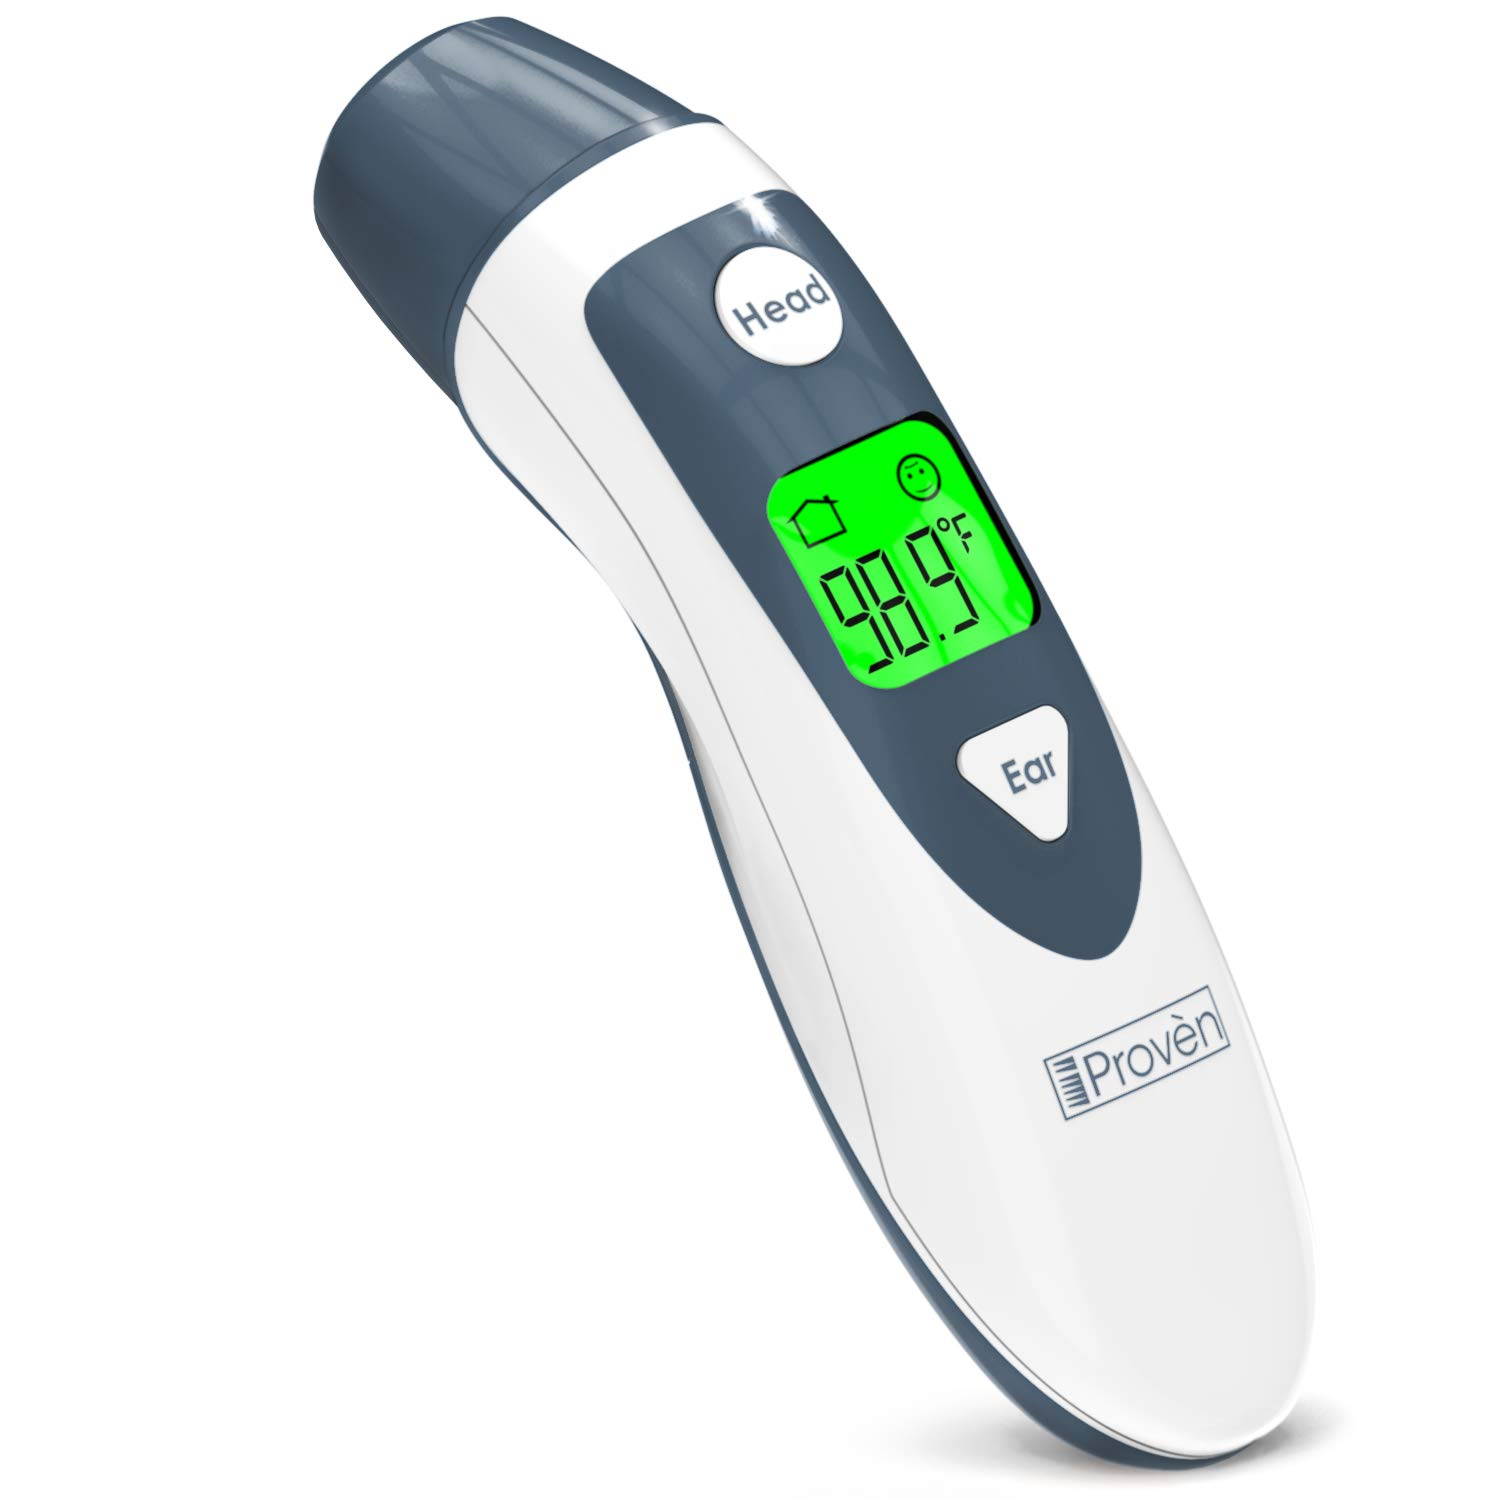 Baby Thermometer for Fever - Ear and Forehead Function - Approved Ear Thermometer for Kids - Digital Thermometer Medical - Temporal Thermometer - Infant Thermometer - iProven DMT489 Gray Cap